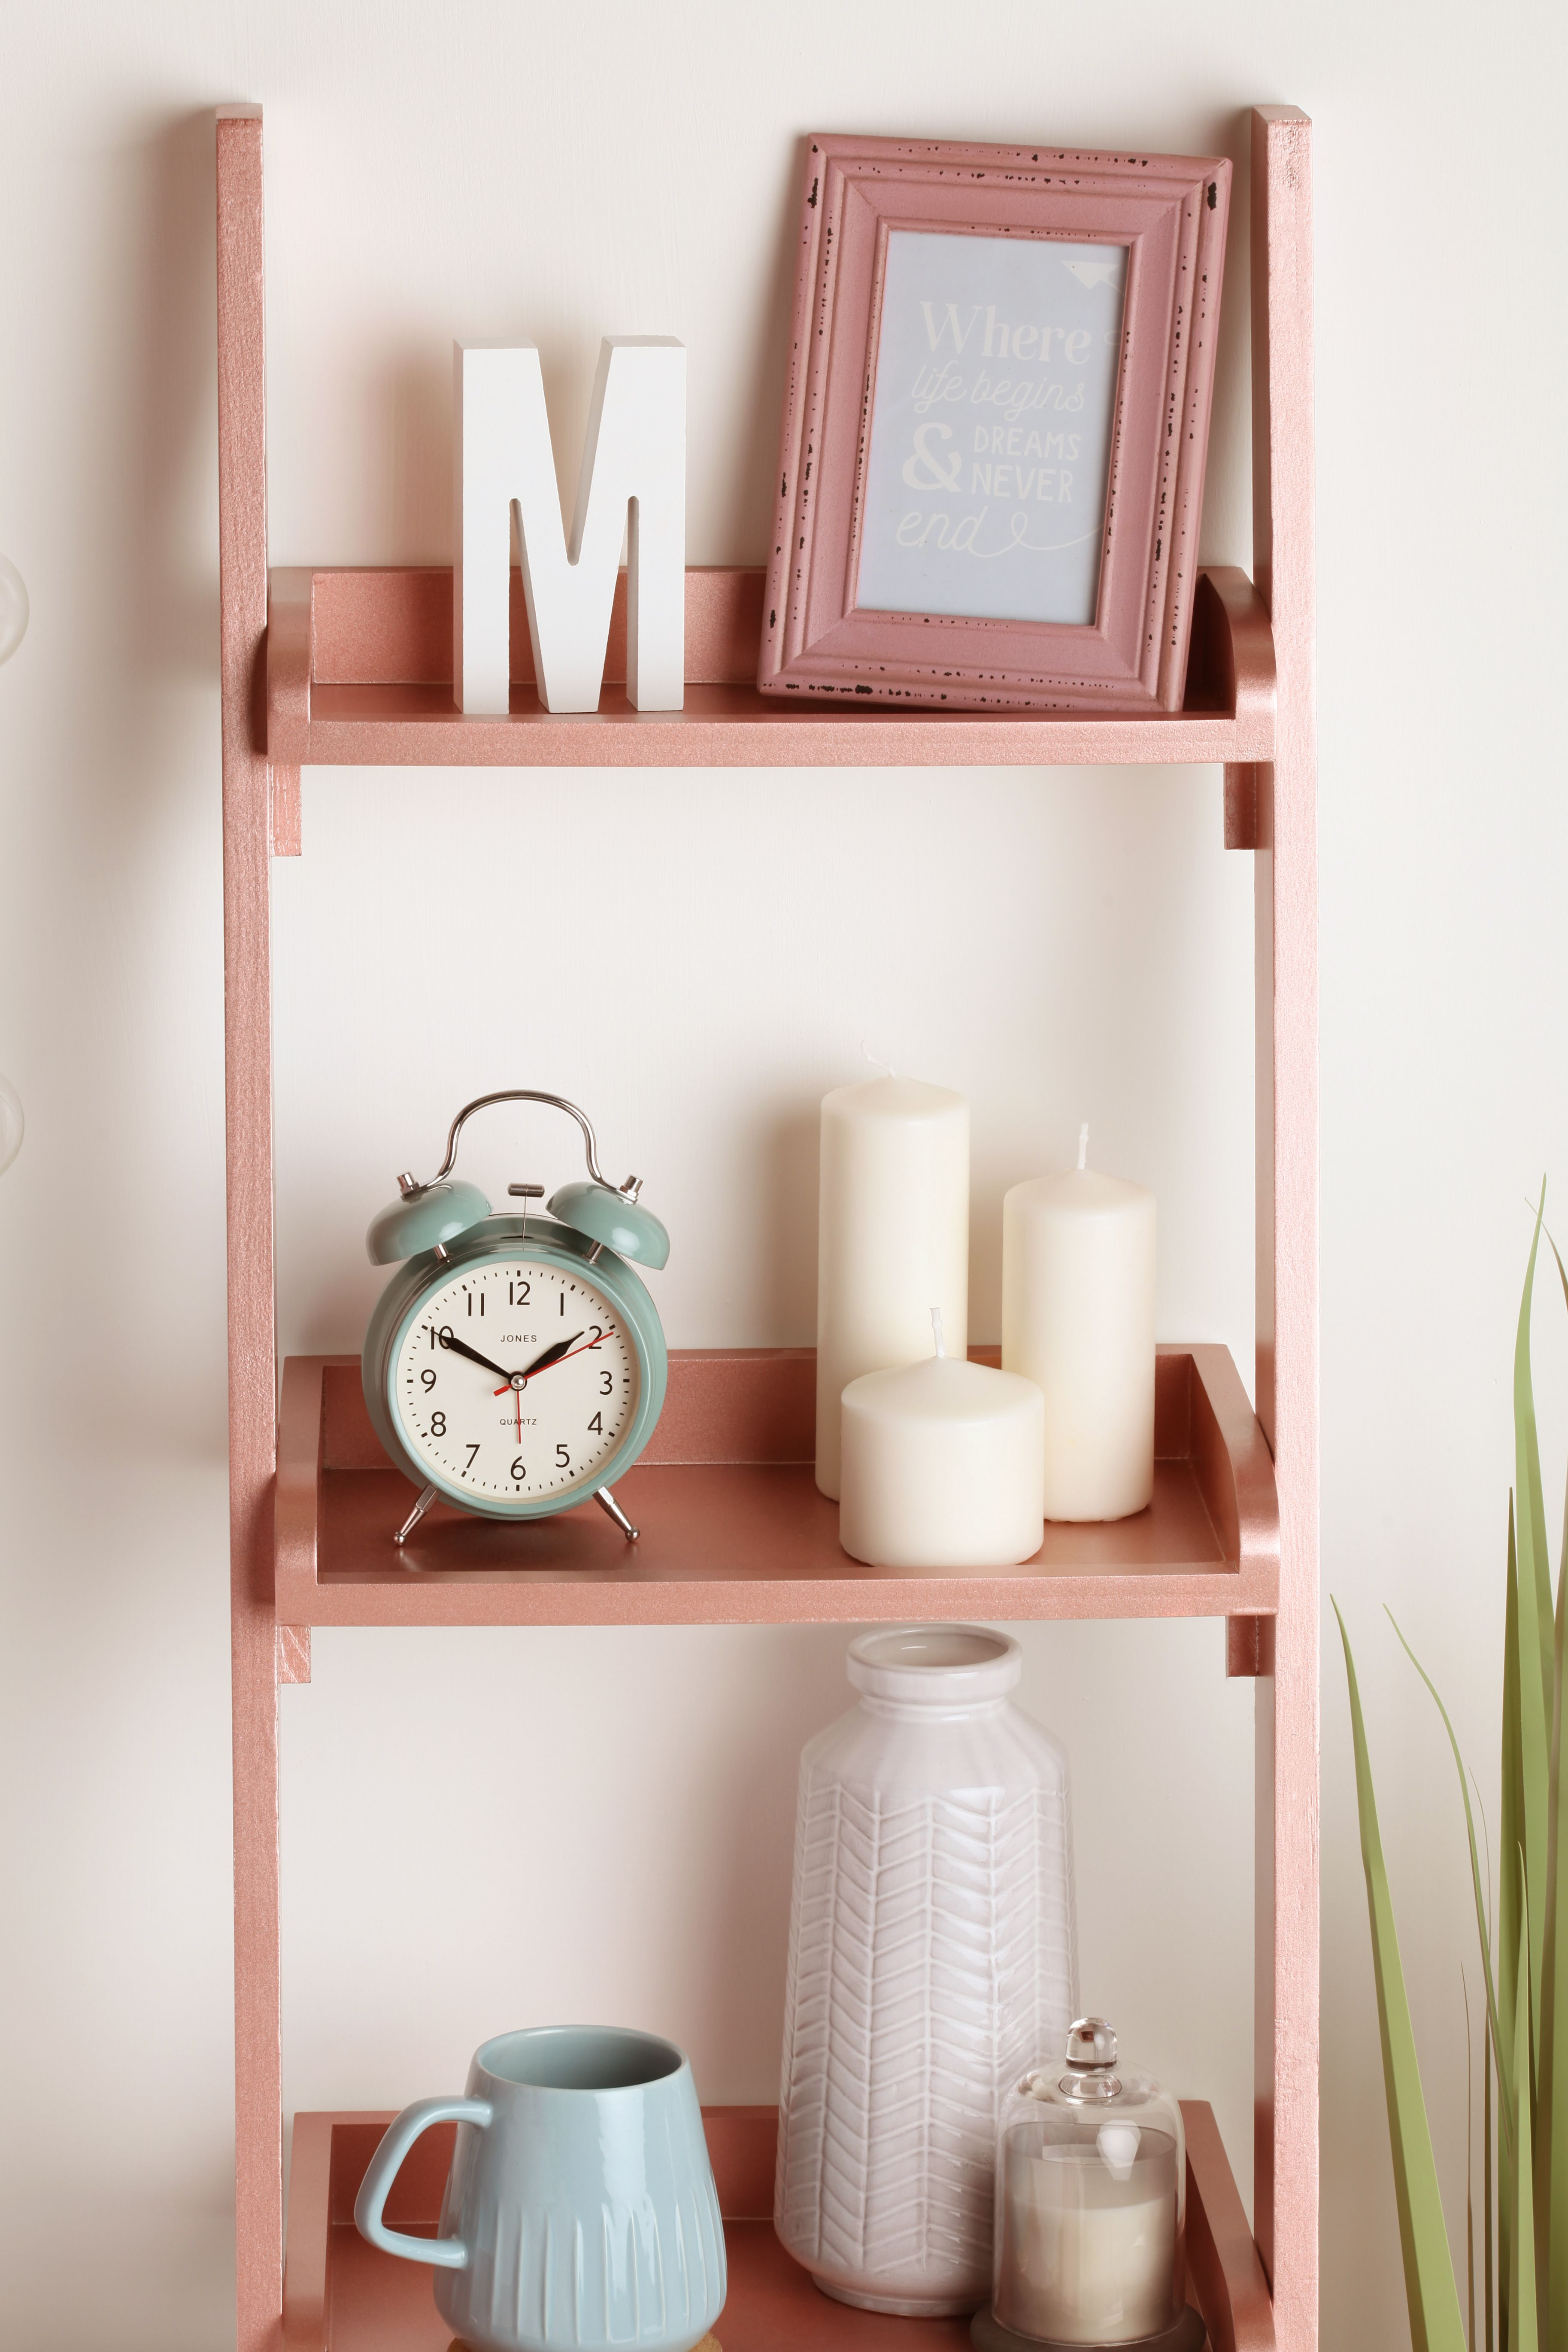 Furniture hack Cheap wooden ladder shelves sprayed with Rose Gold